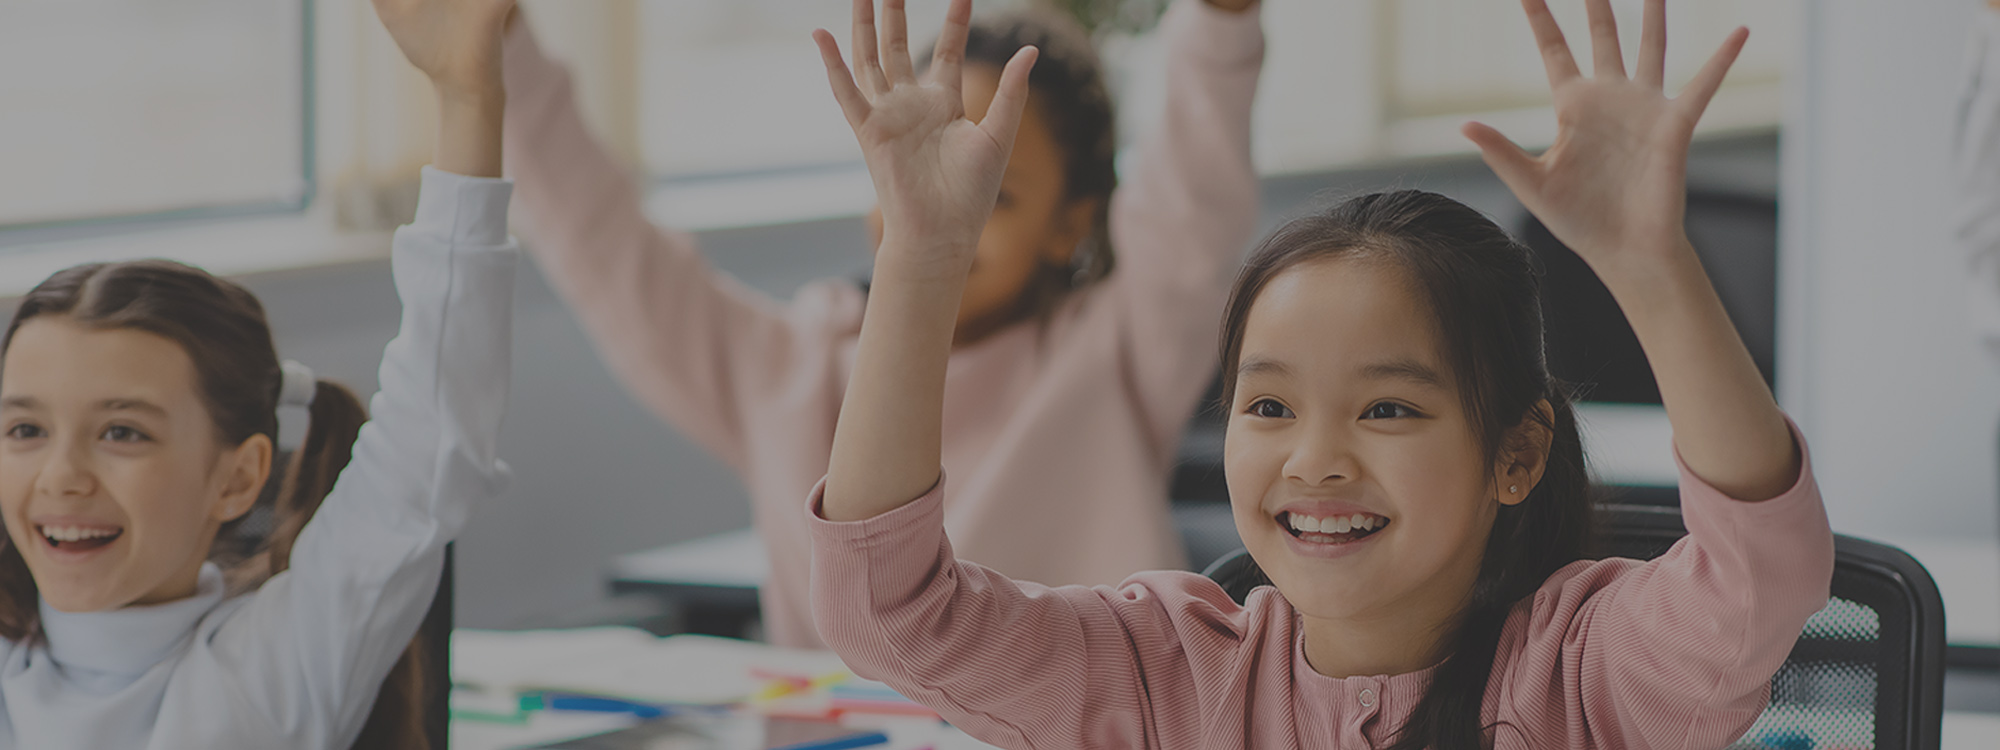 Kids smiling and raising hands in classroom